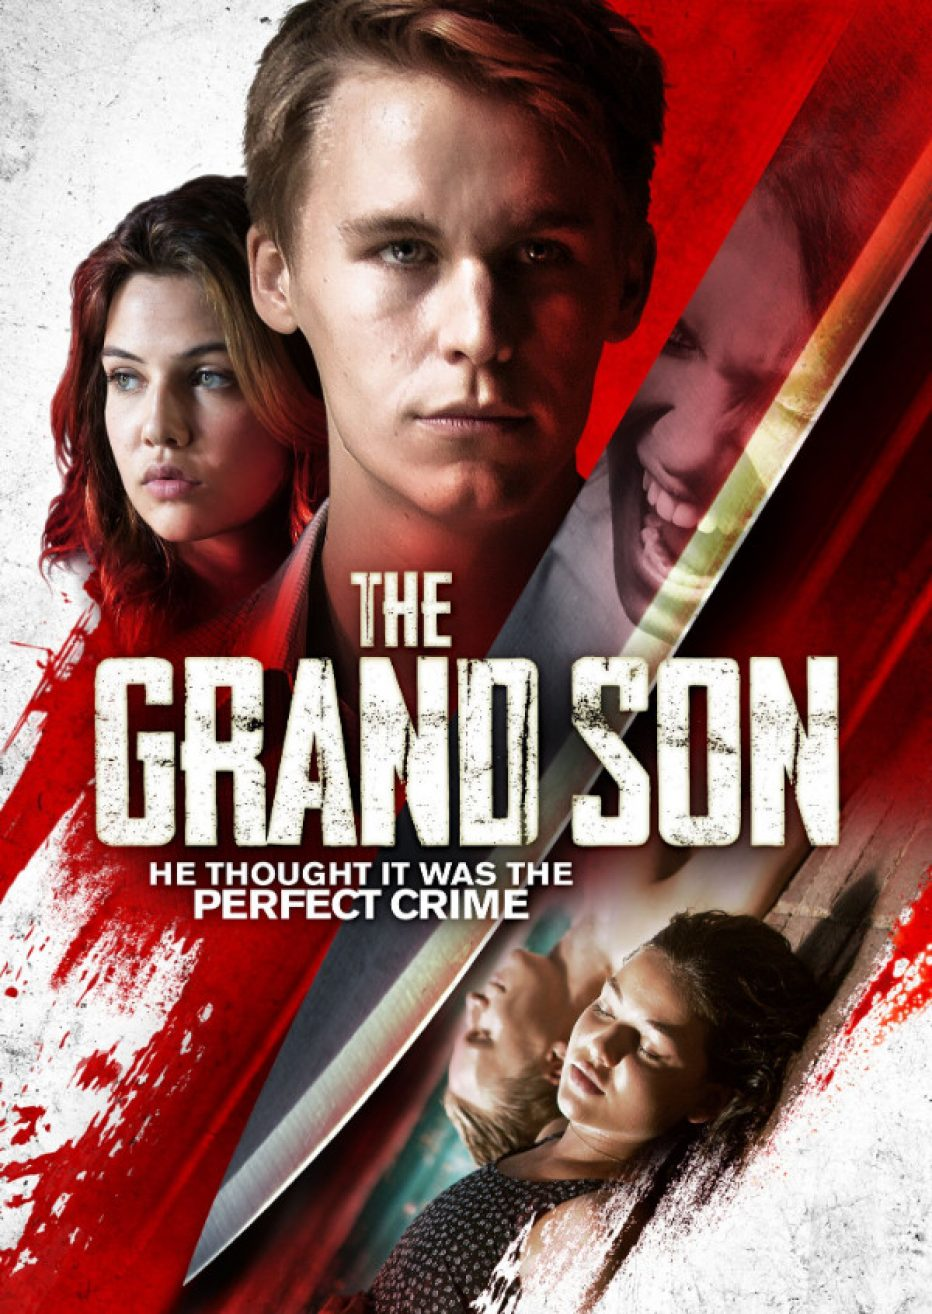 THE PURGE'S Rhys Wakefield and Oscar Nominee Lesley Anne Warren in THE GRAND SON – making a killing this August on VOD!